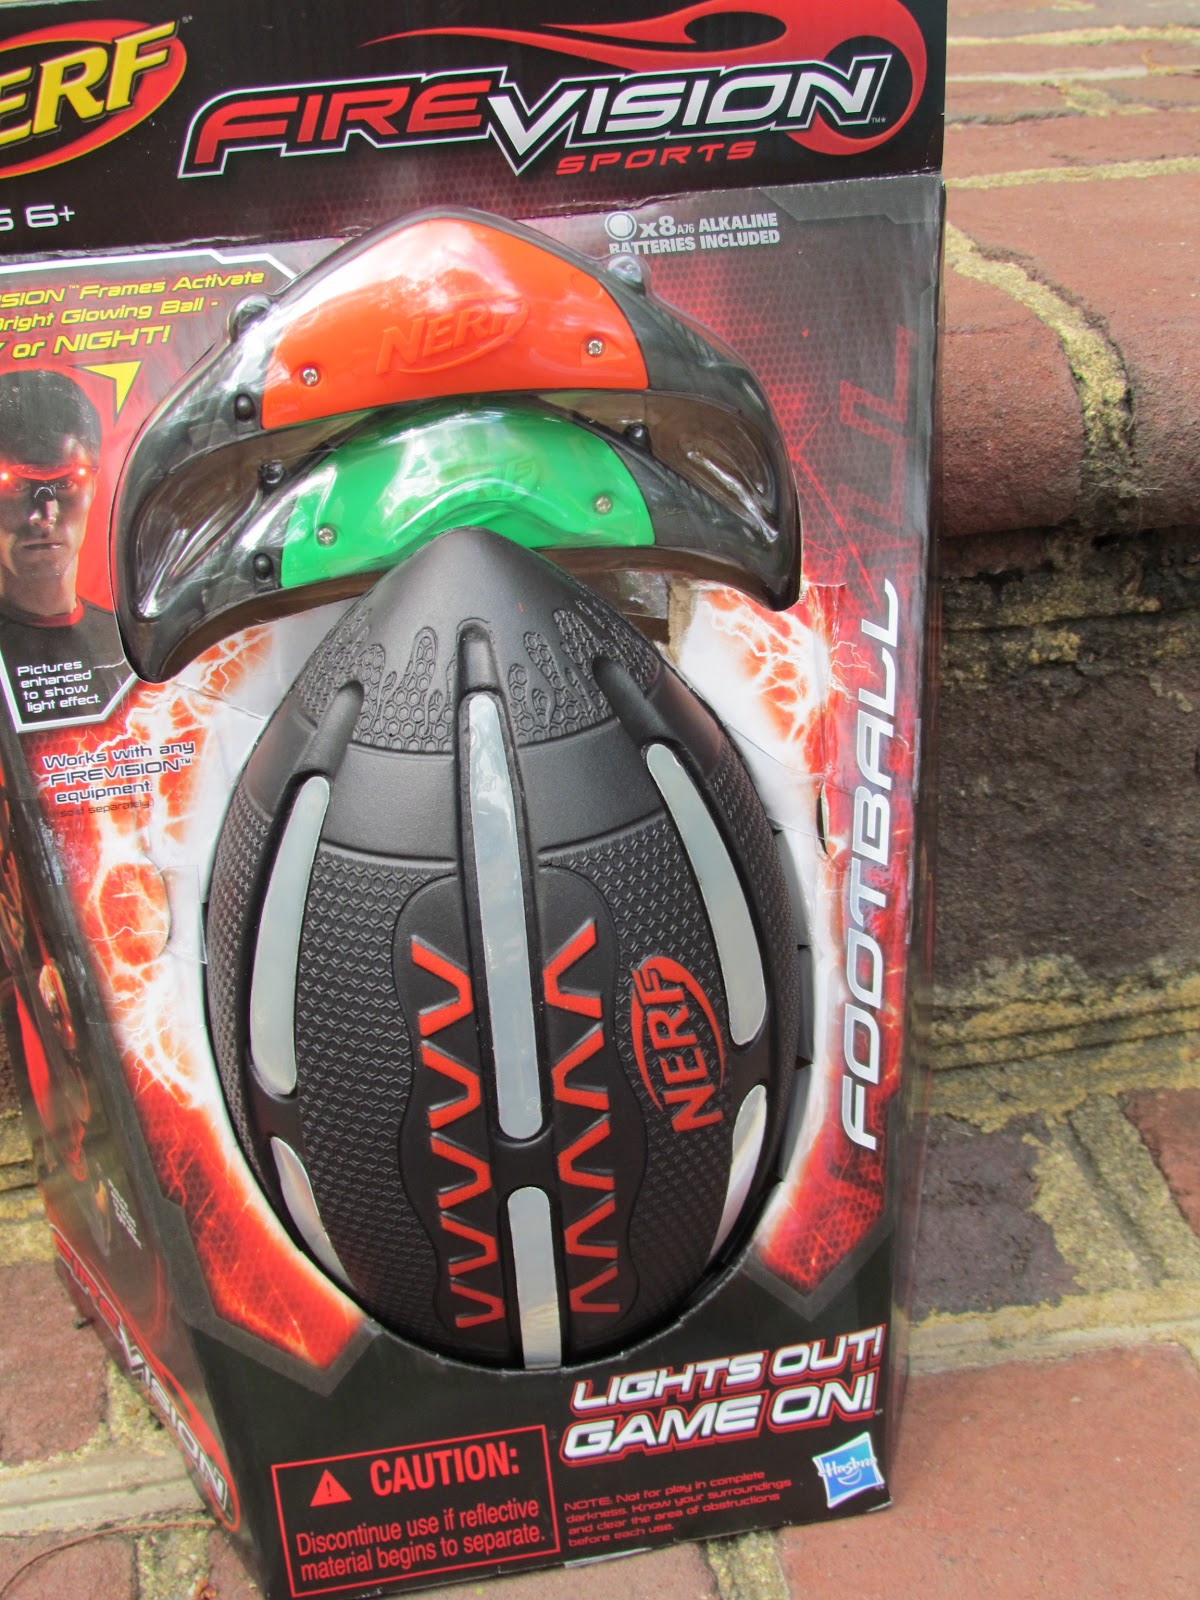 Nerf Nite Fire Vision Football